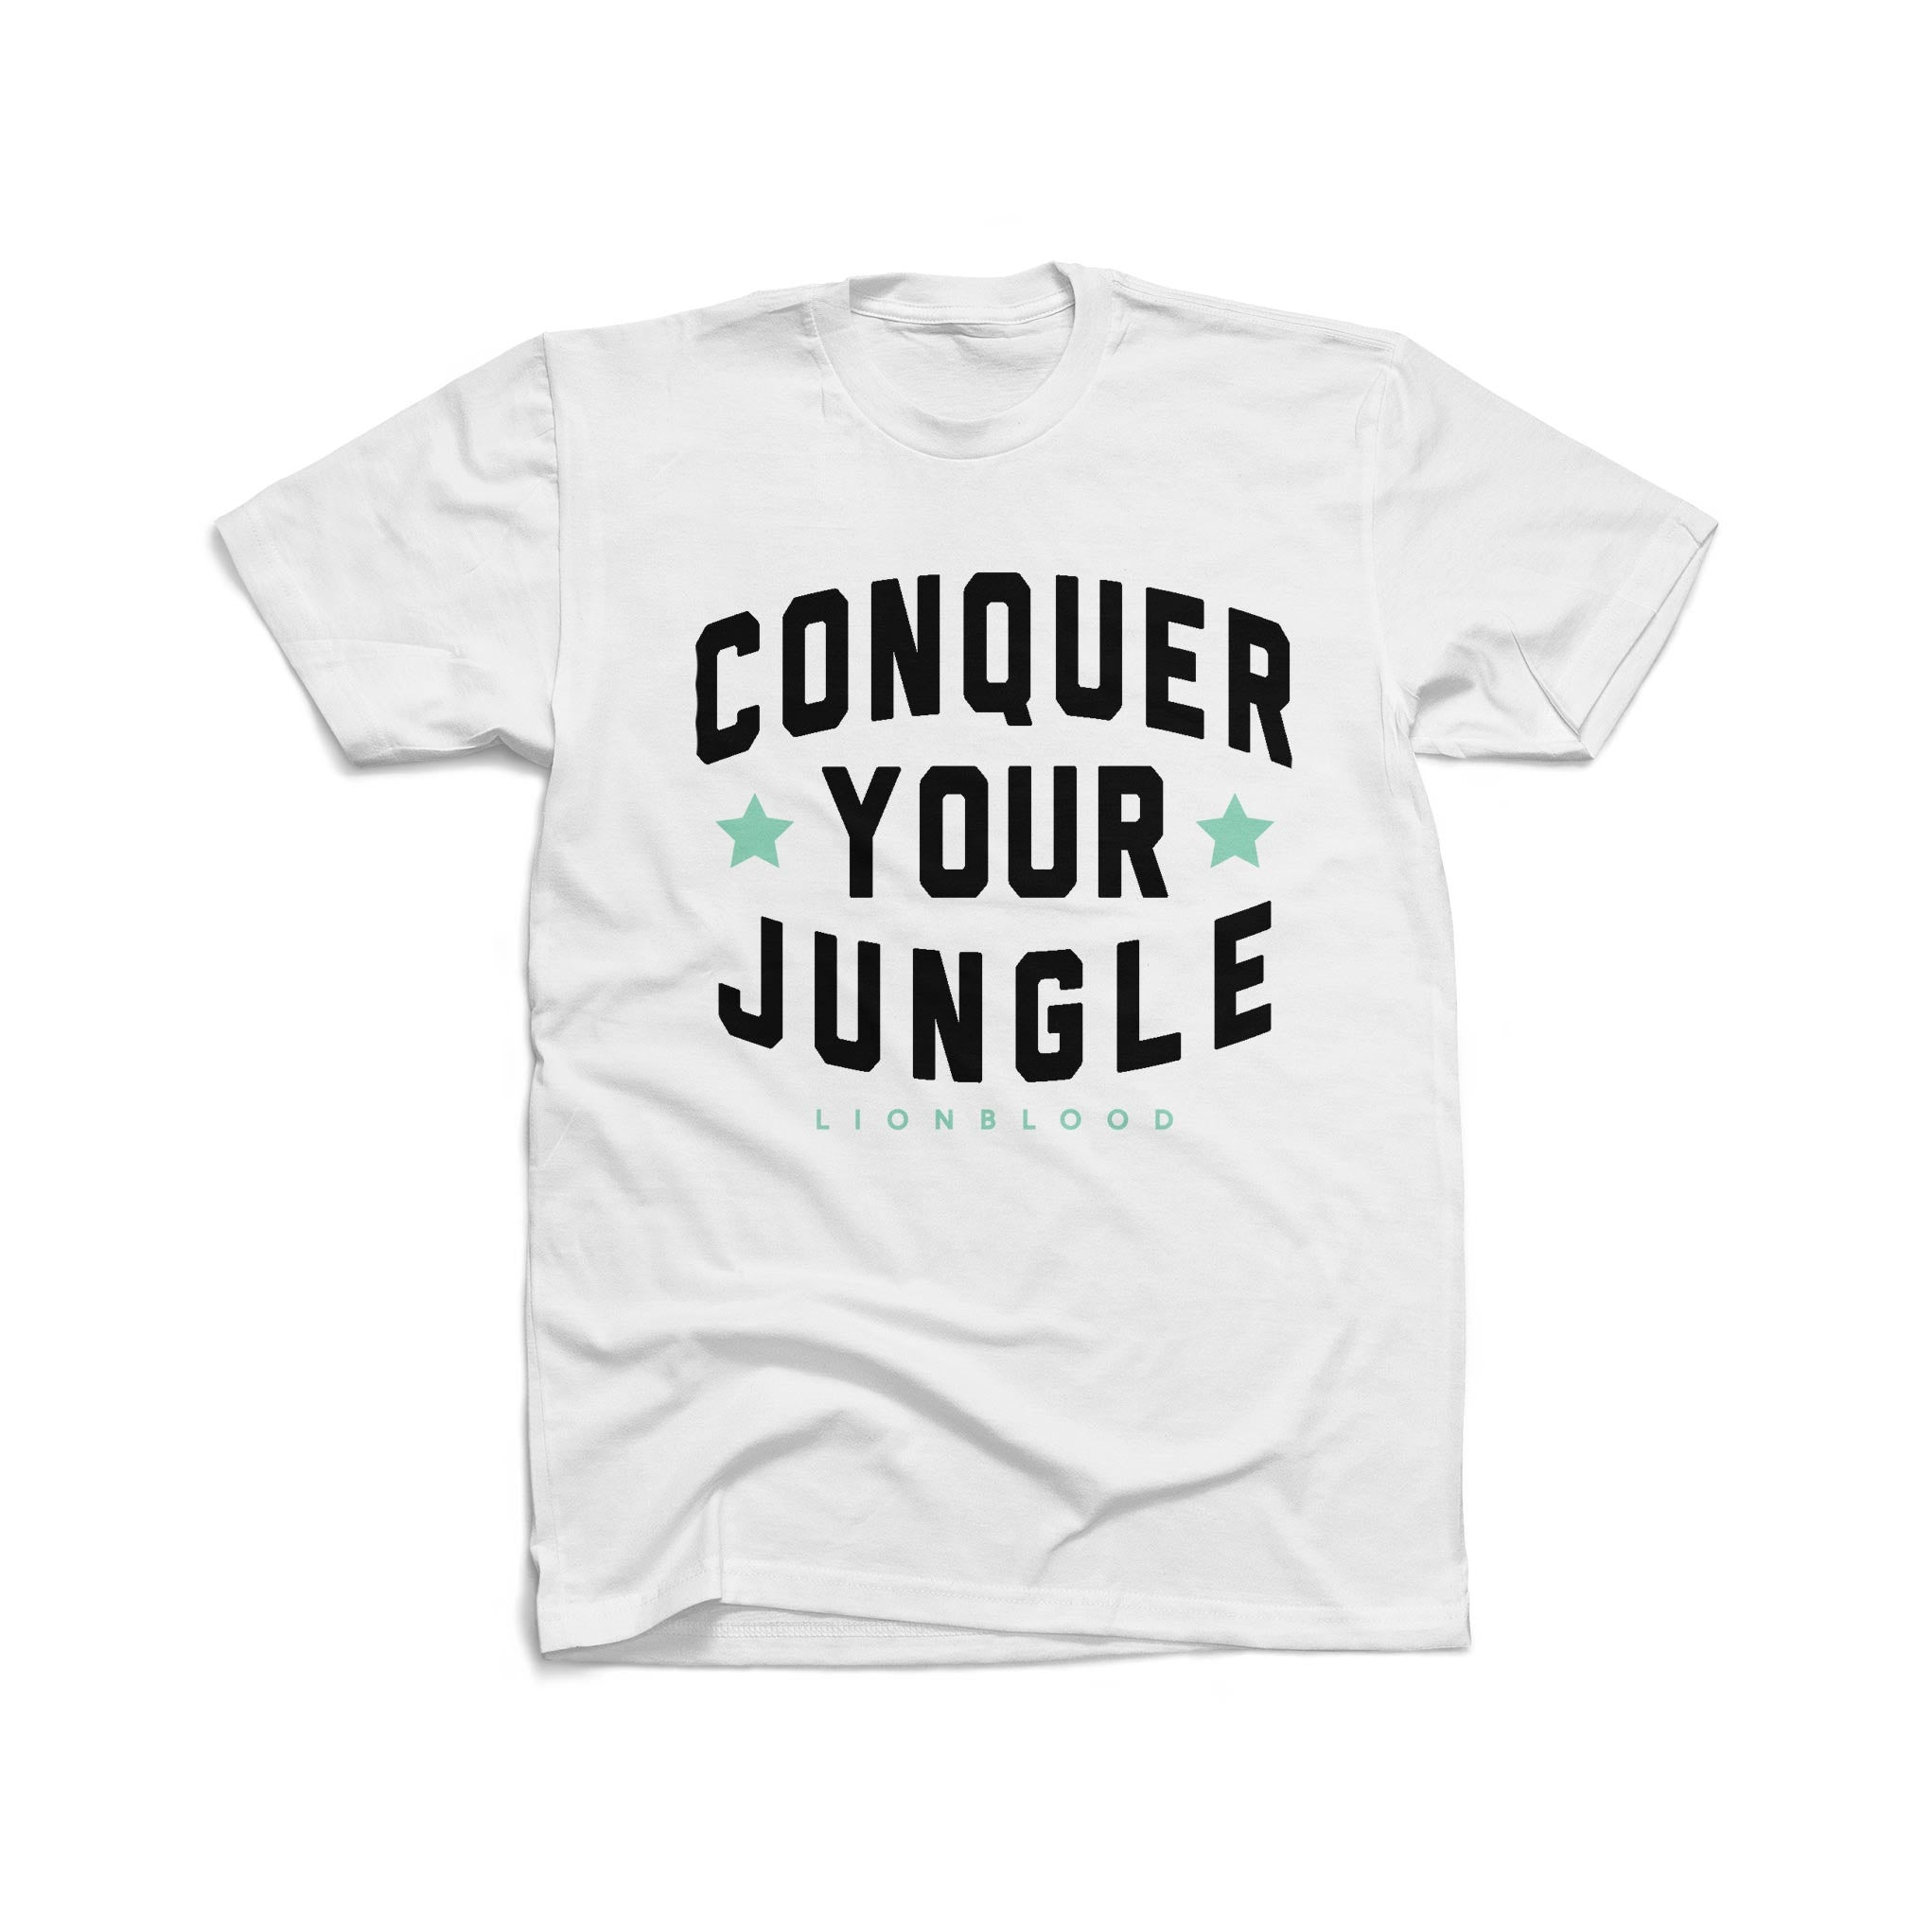 CONQUER YOUR JUNGLE